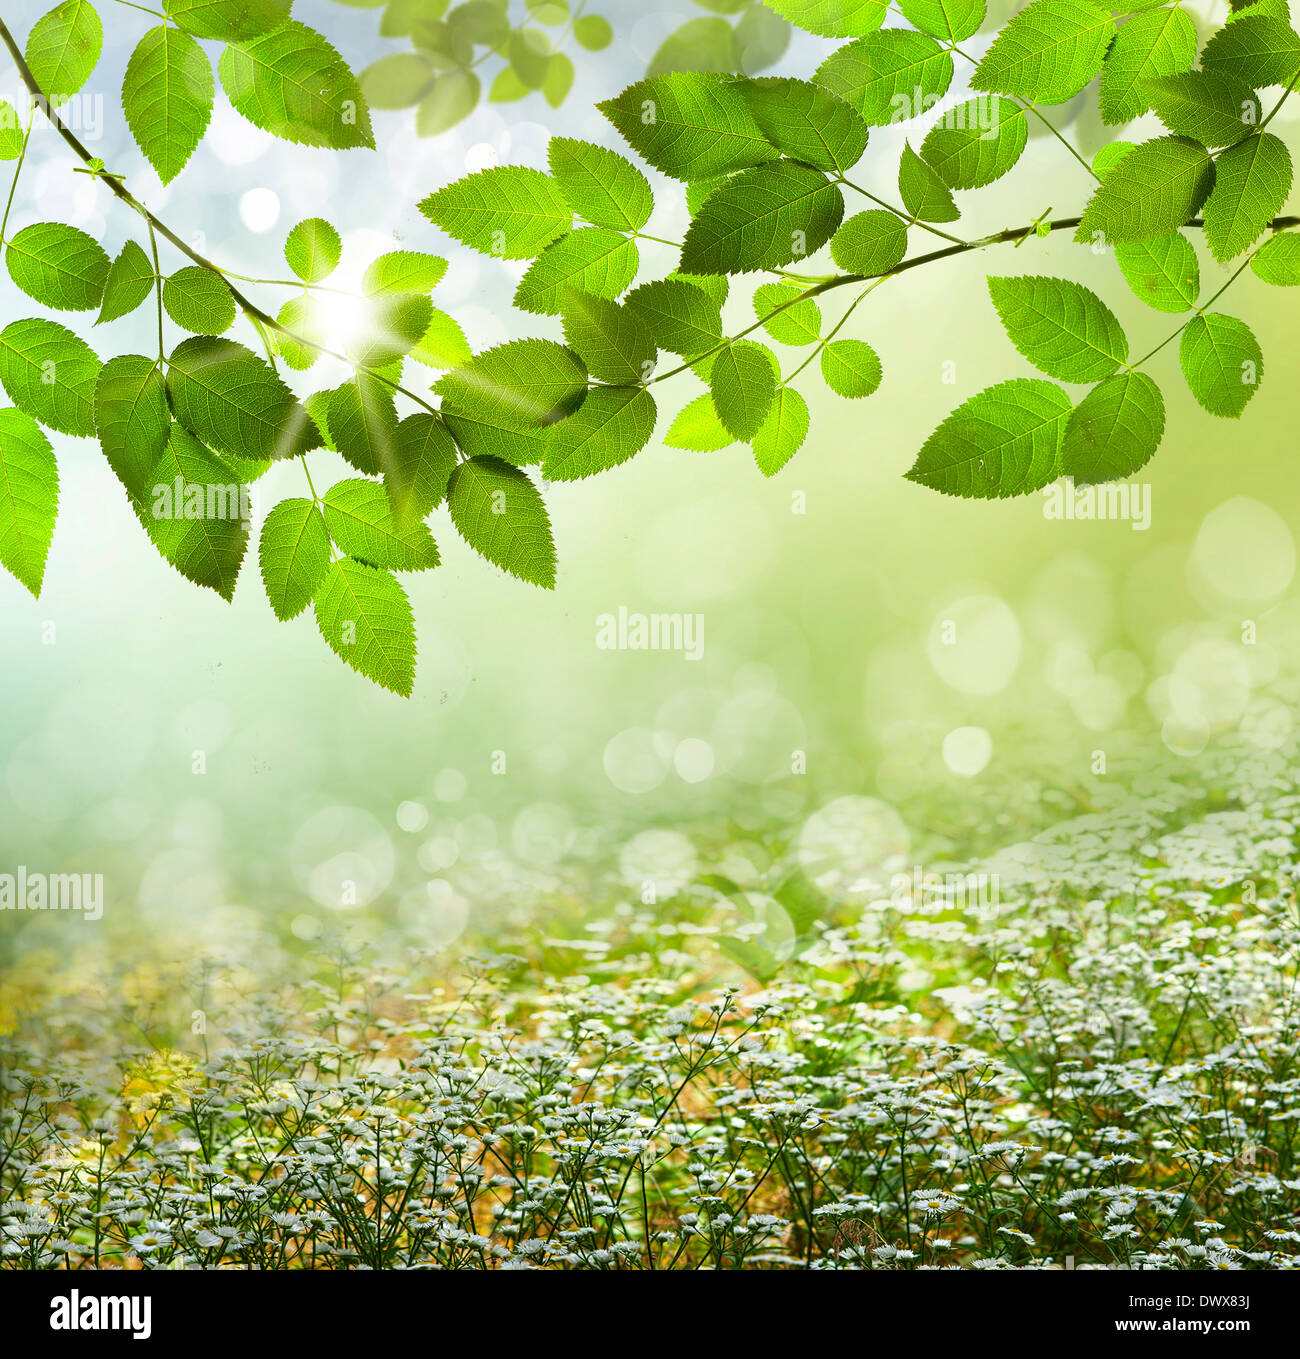 spring or summer season abstract nature background with grass and